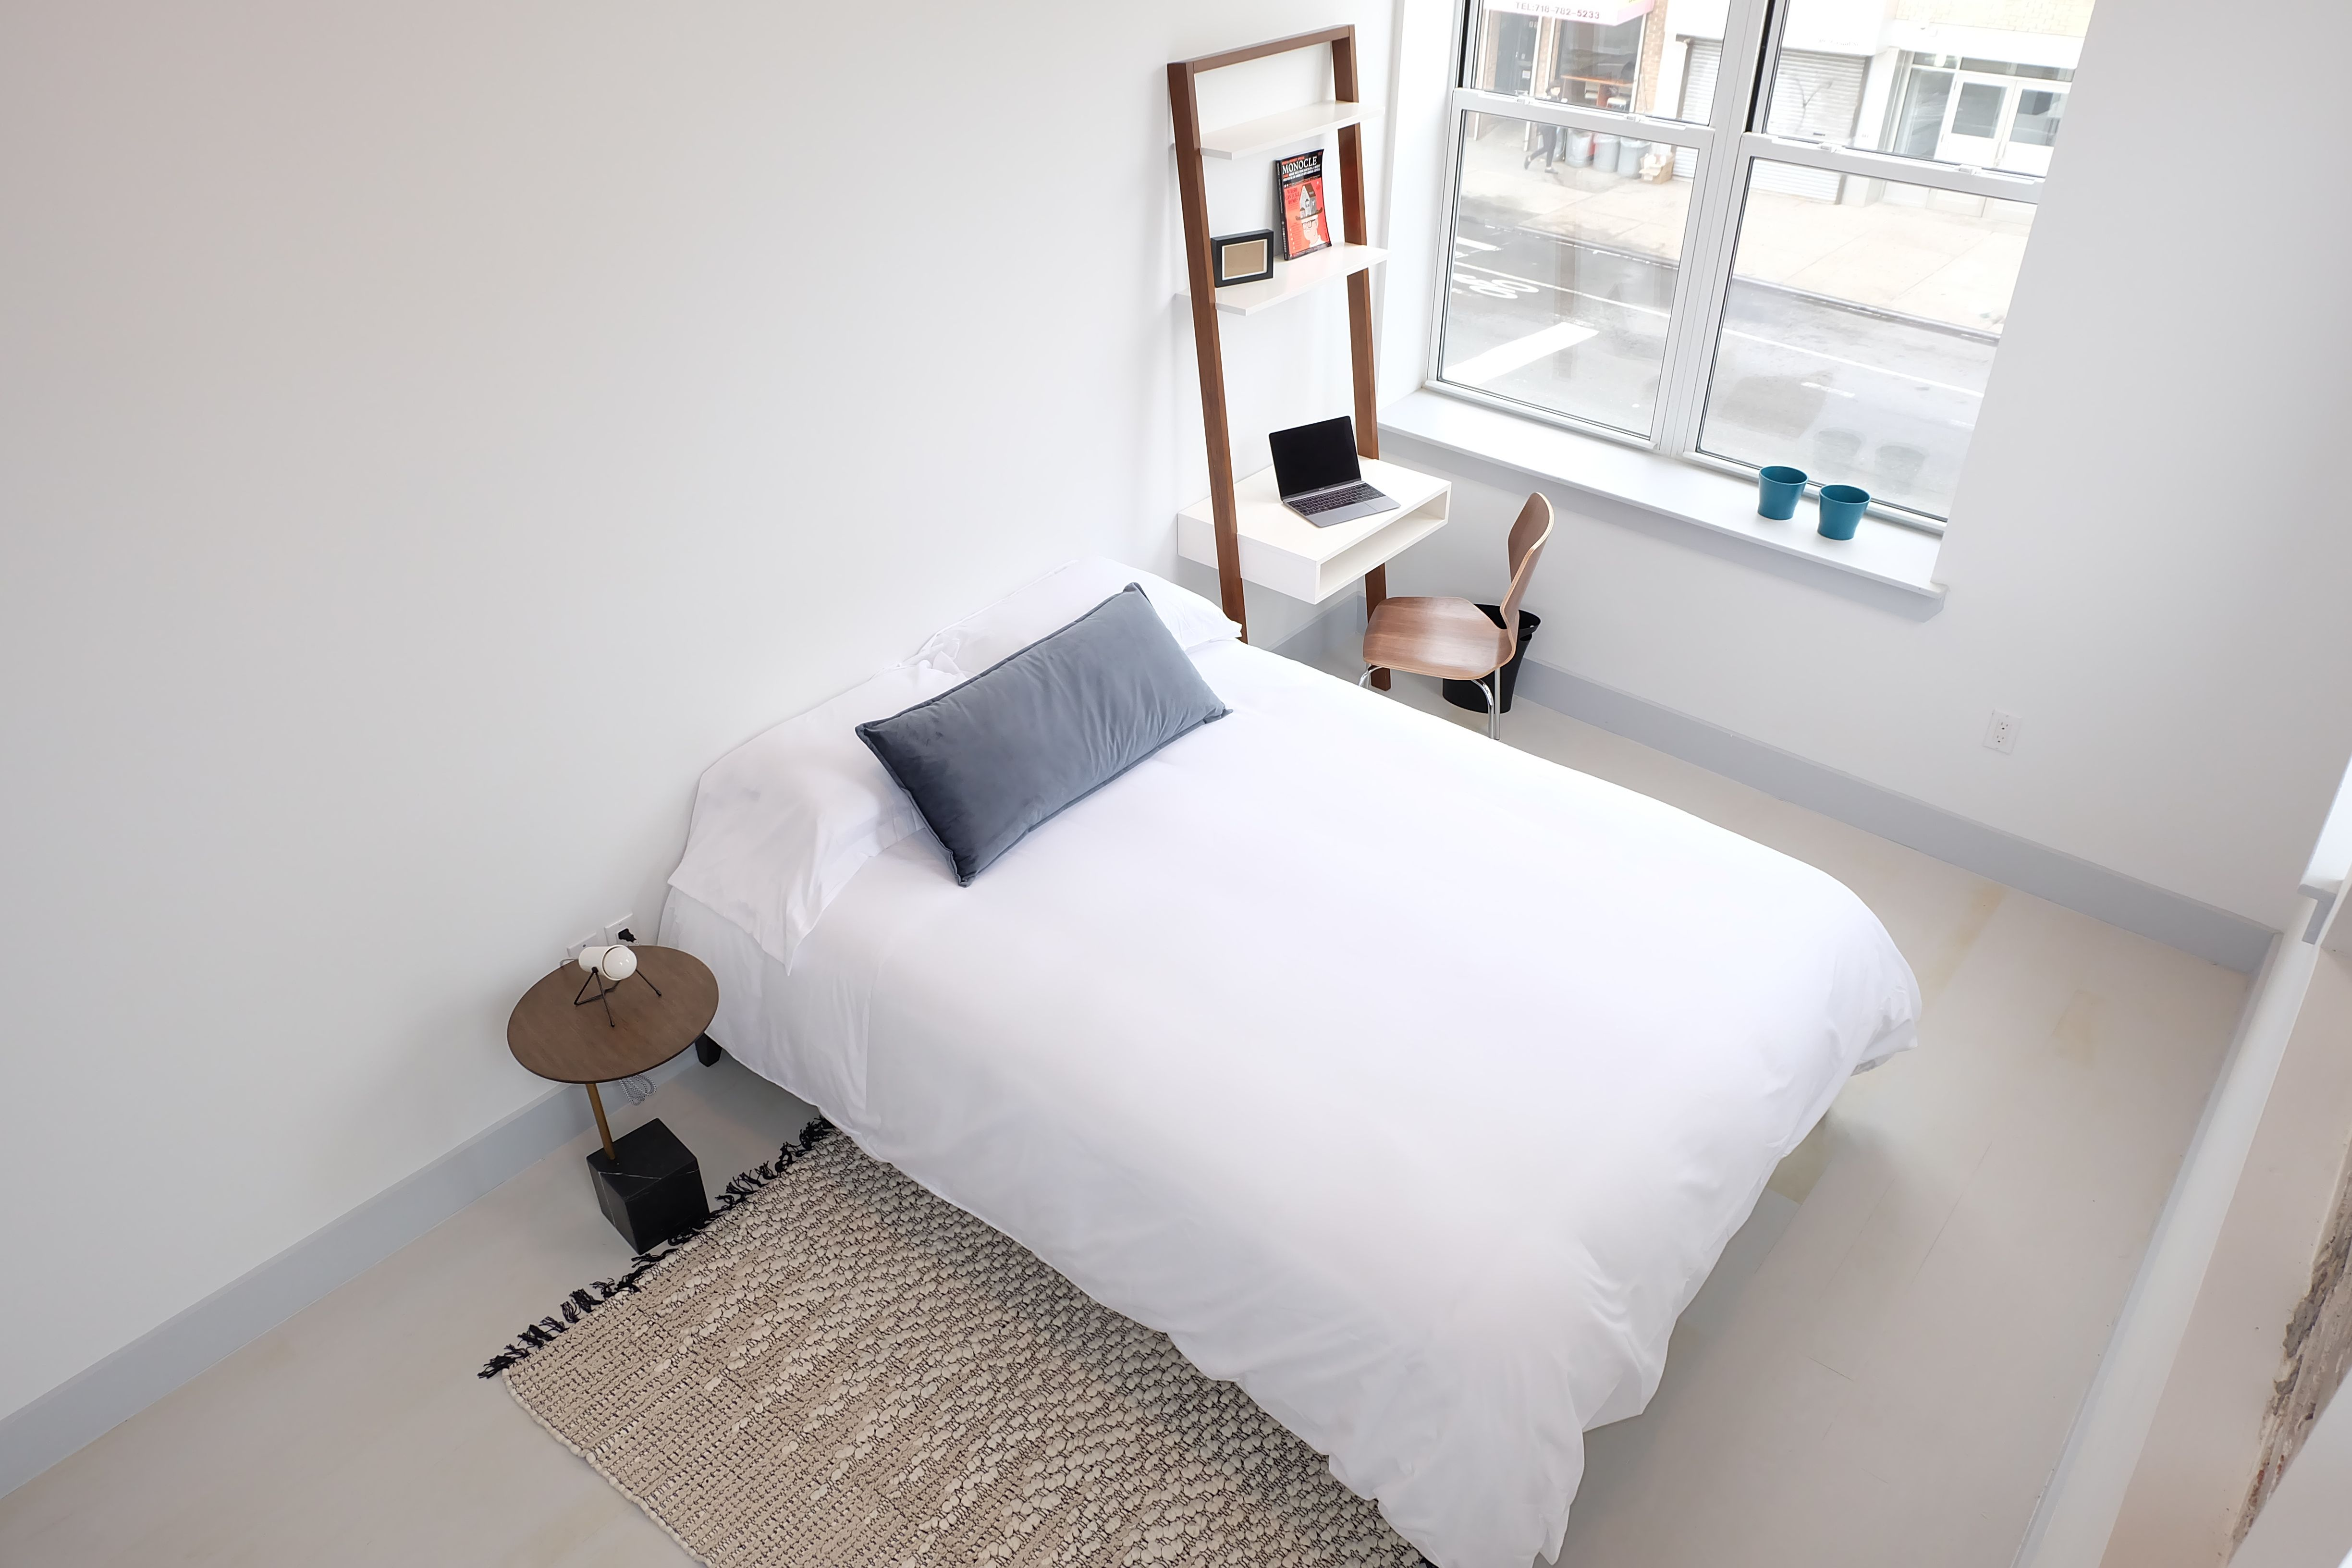 cozy furniture brooklyn. Cozy Furniture Brooklyn. Cozy, Well-designed Rooms In Brooklyn, Nyc. Gorgeous Brooklyn